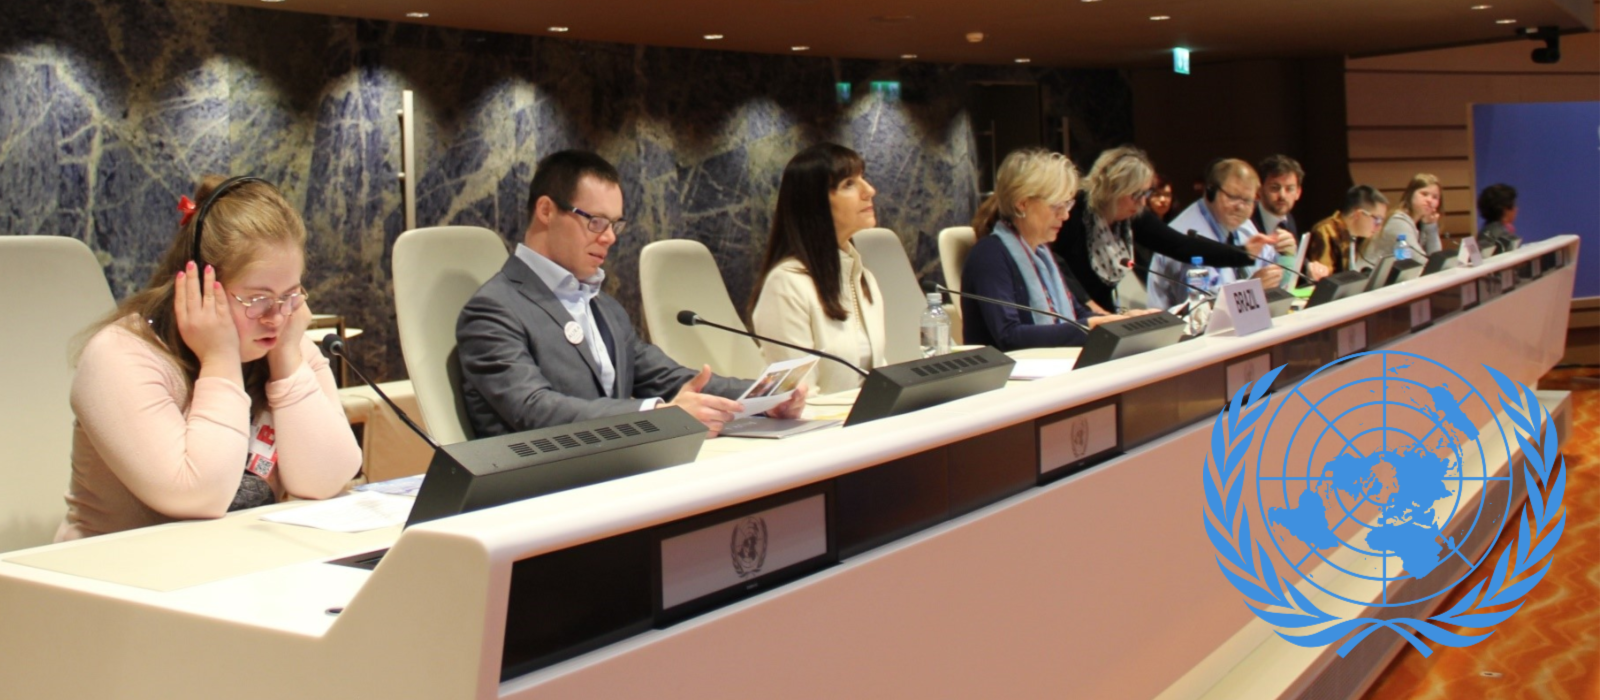 Panel at Geneva event